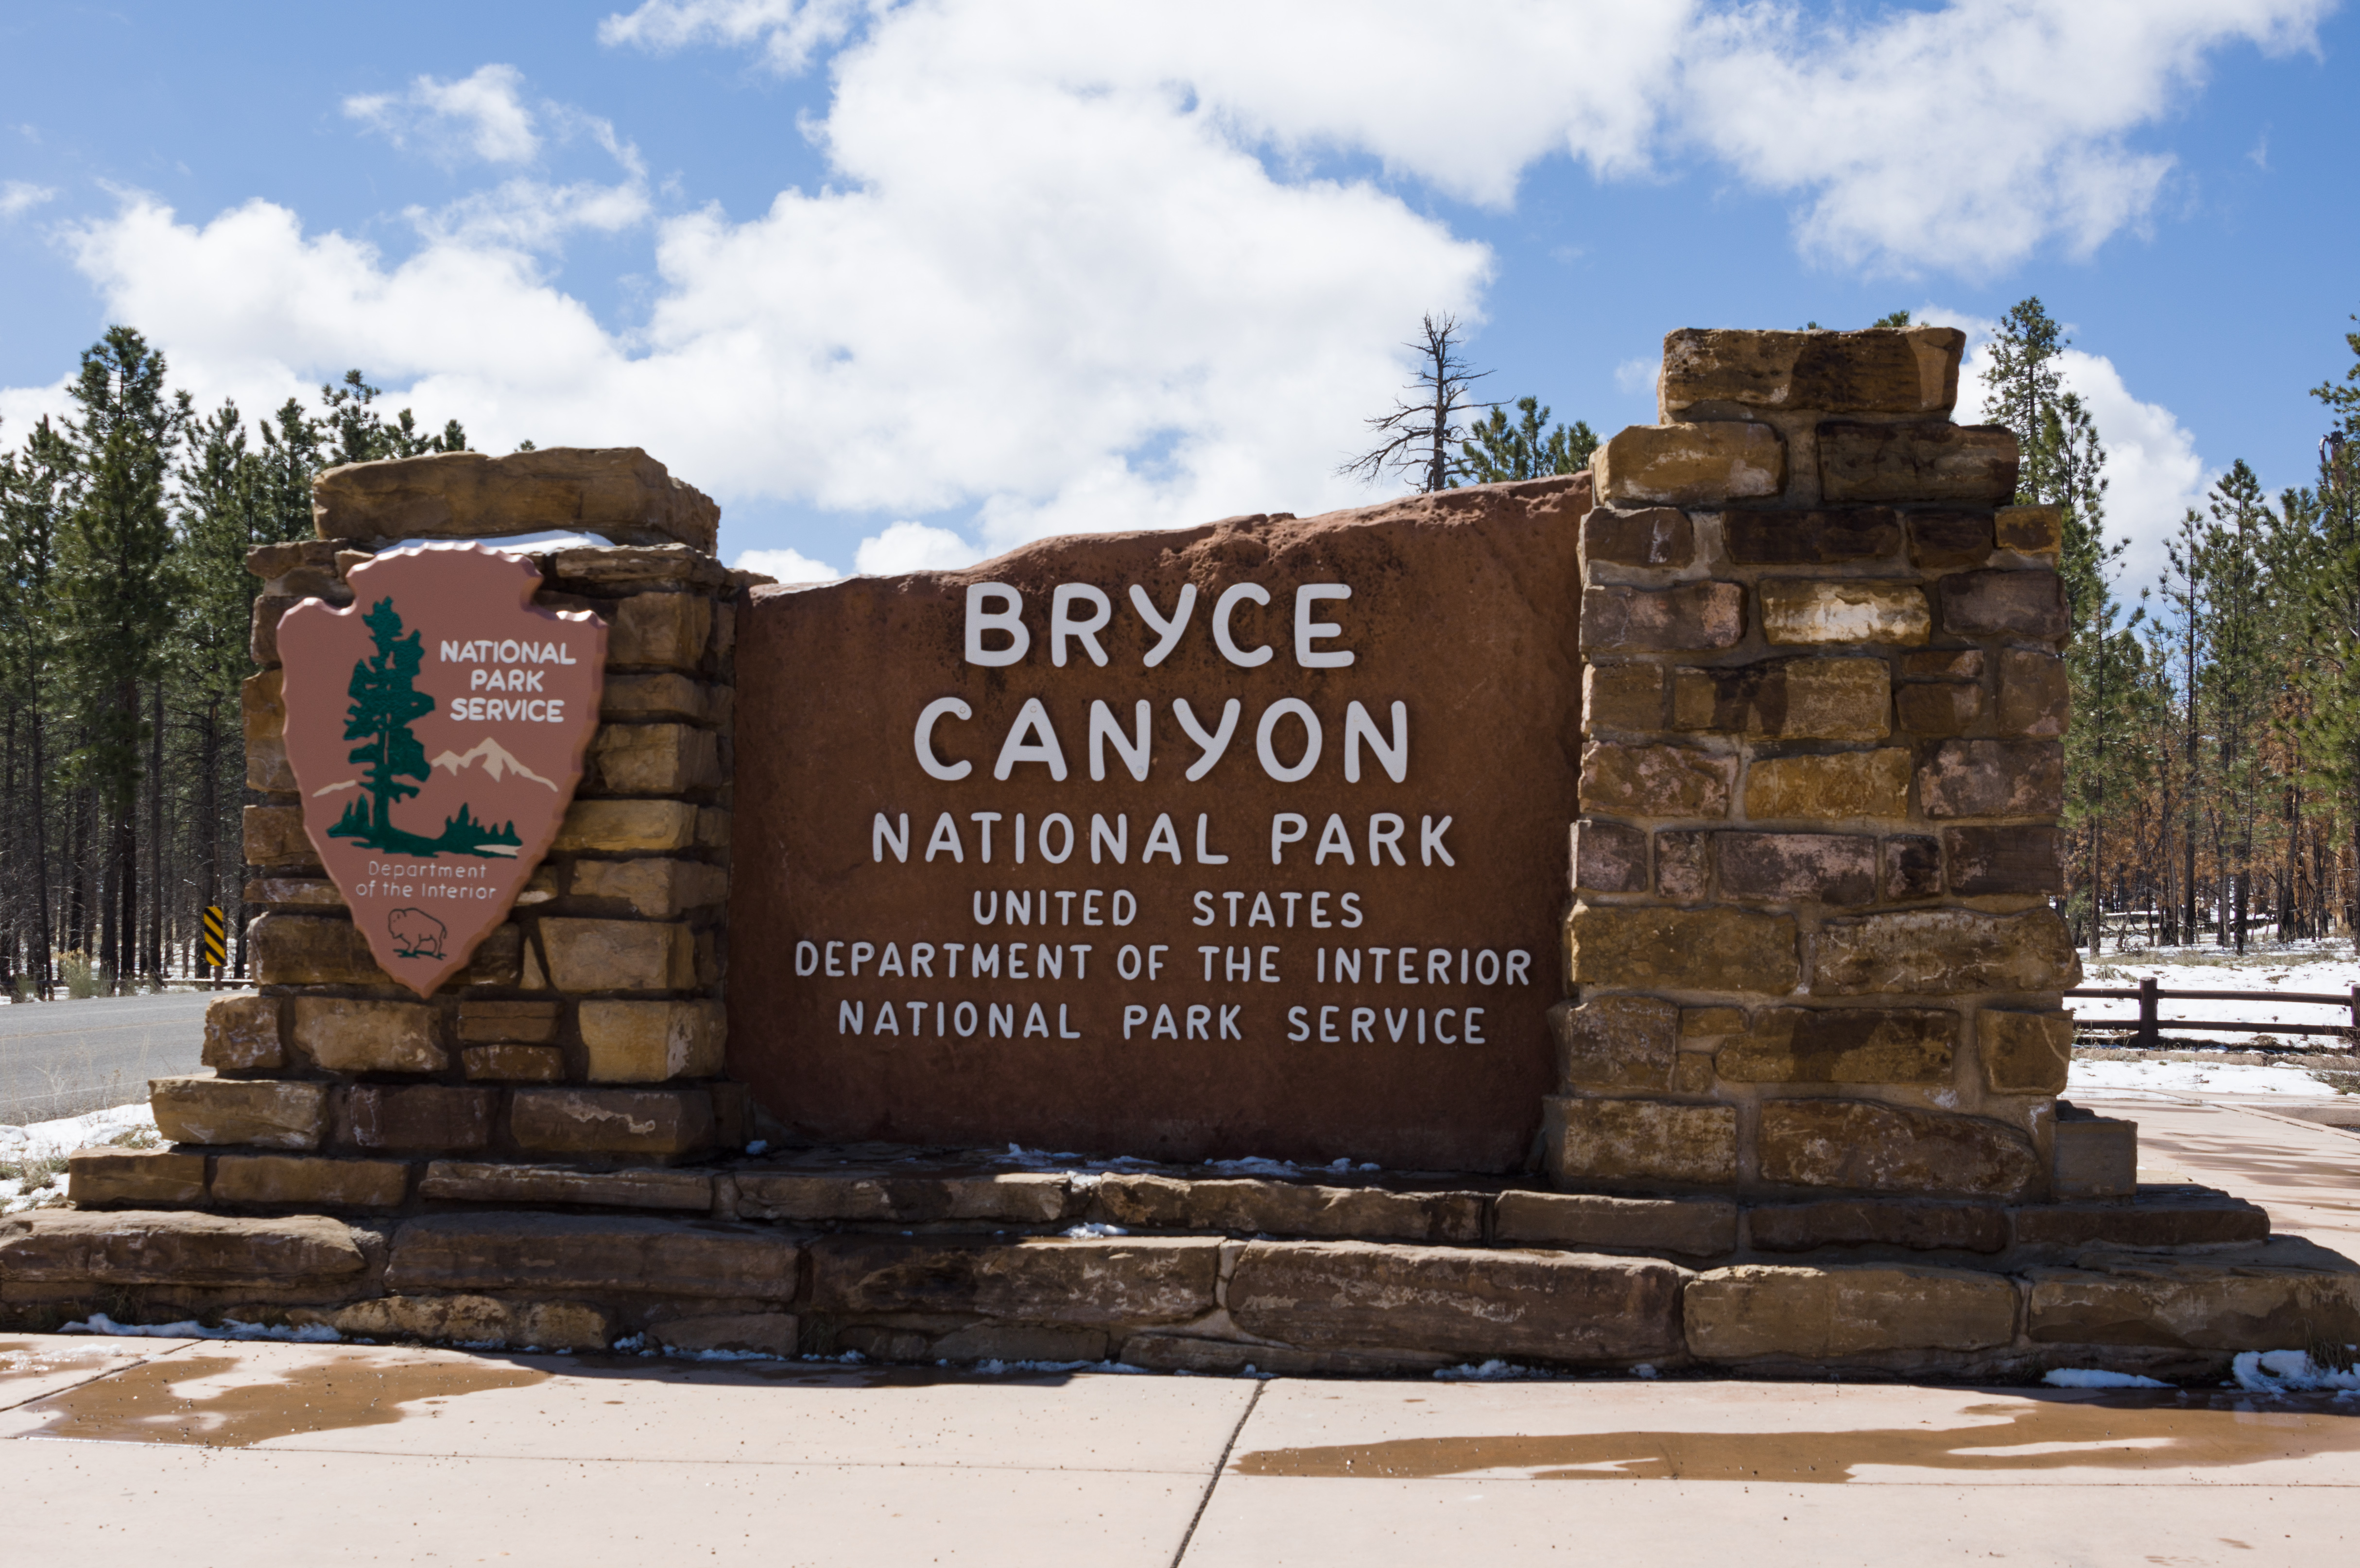 bryce canyon cougars dating site If you never tried dating bryce canyon city men in the internet, you should make an attempt who knows, the right man could be waiting for you right now on luvfreecom join bryce canyon city best 100% free dating site and start meeting bryce canyon city single men right now.